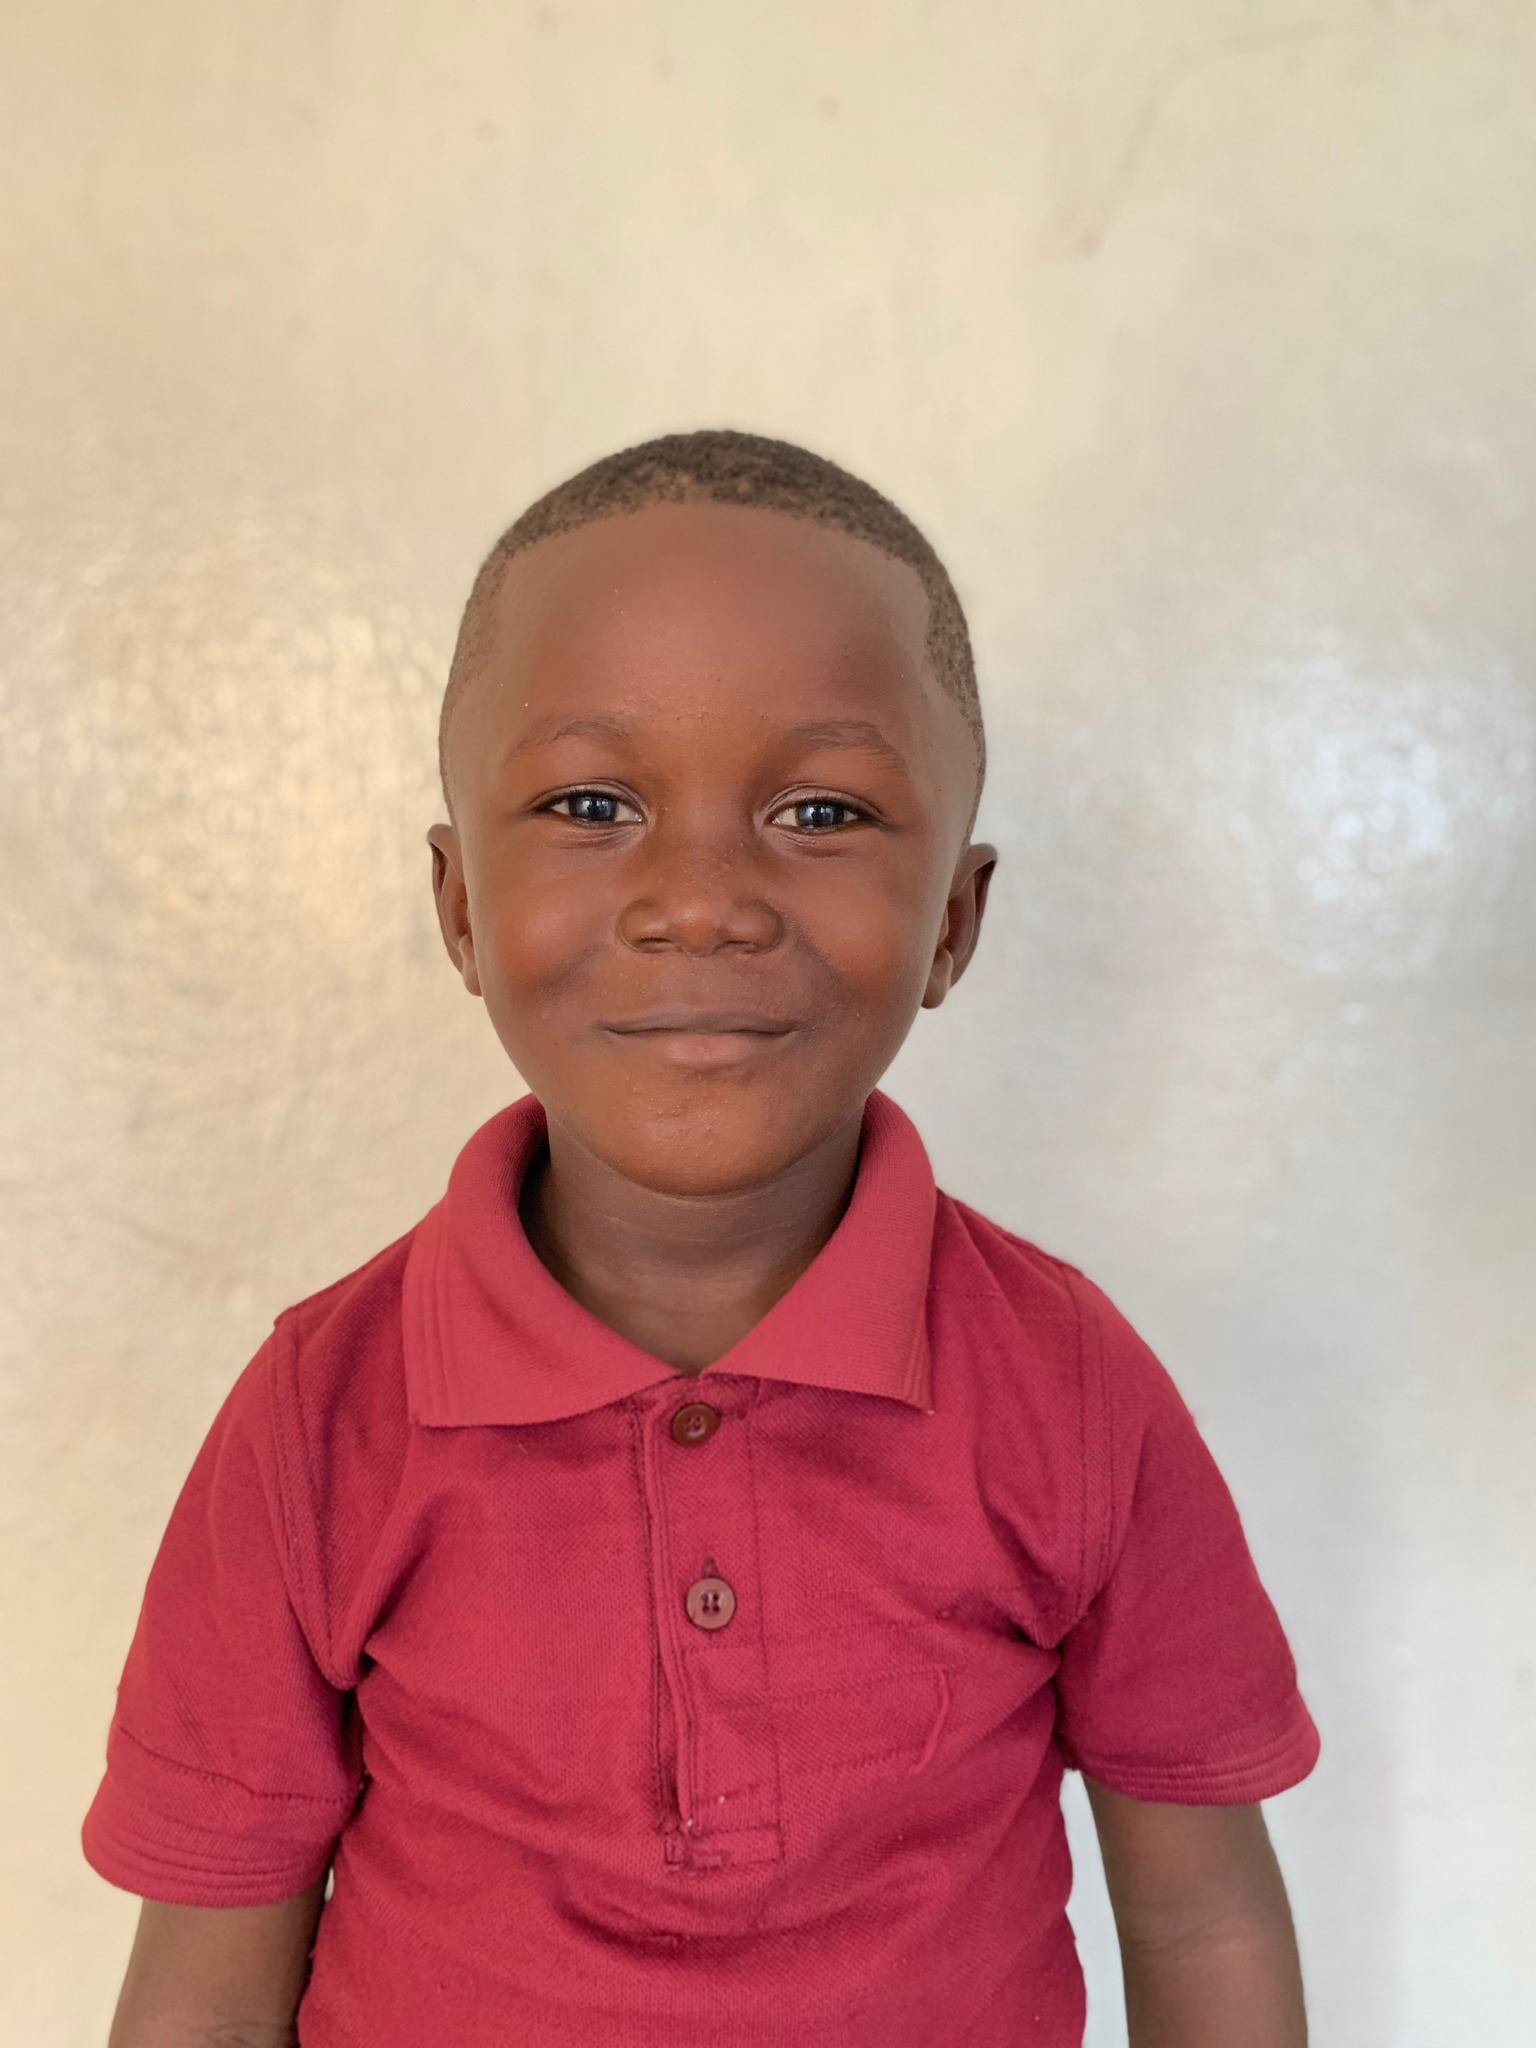 Hello, my name is Aquila Kwenah. - Aquila is a 4-year-old boy.Aquila lives with his parents, brother, and two sisters; and loves cats, football, and the color blue.